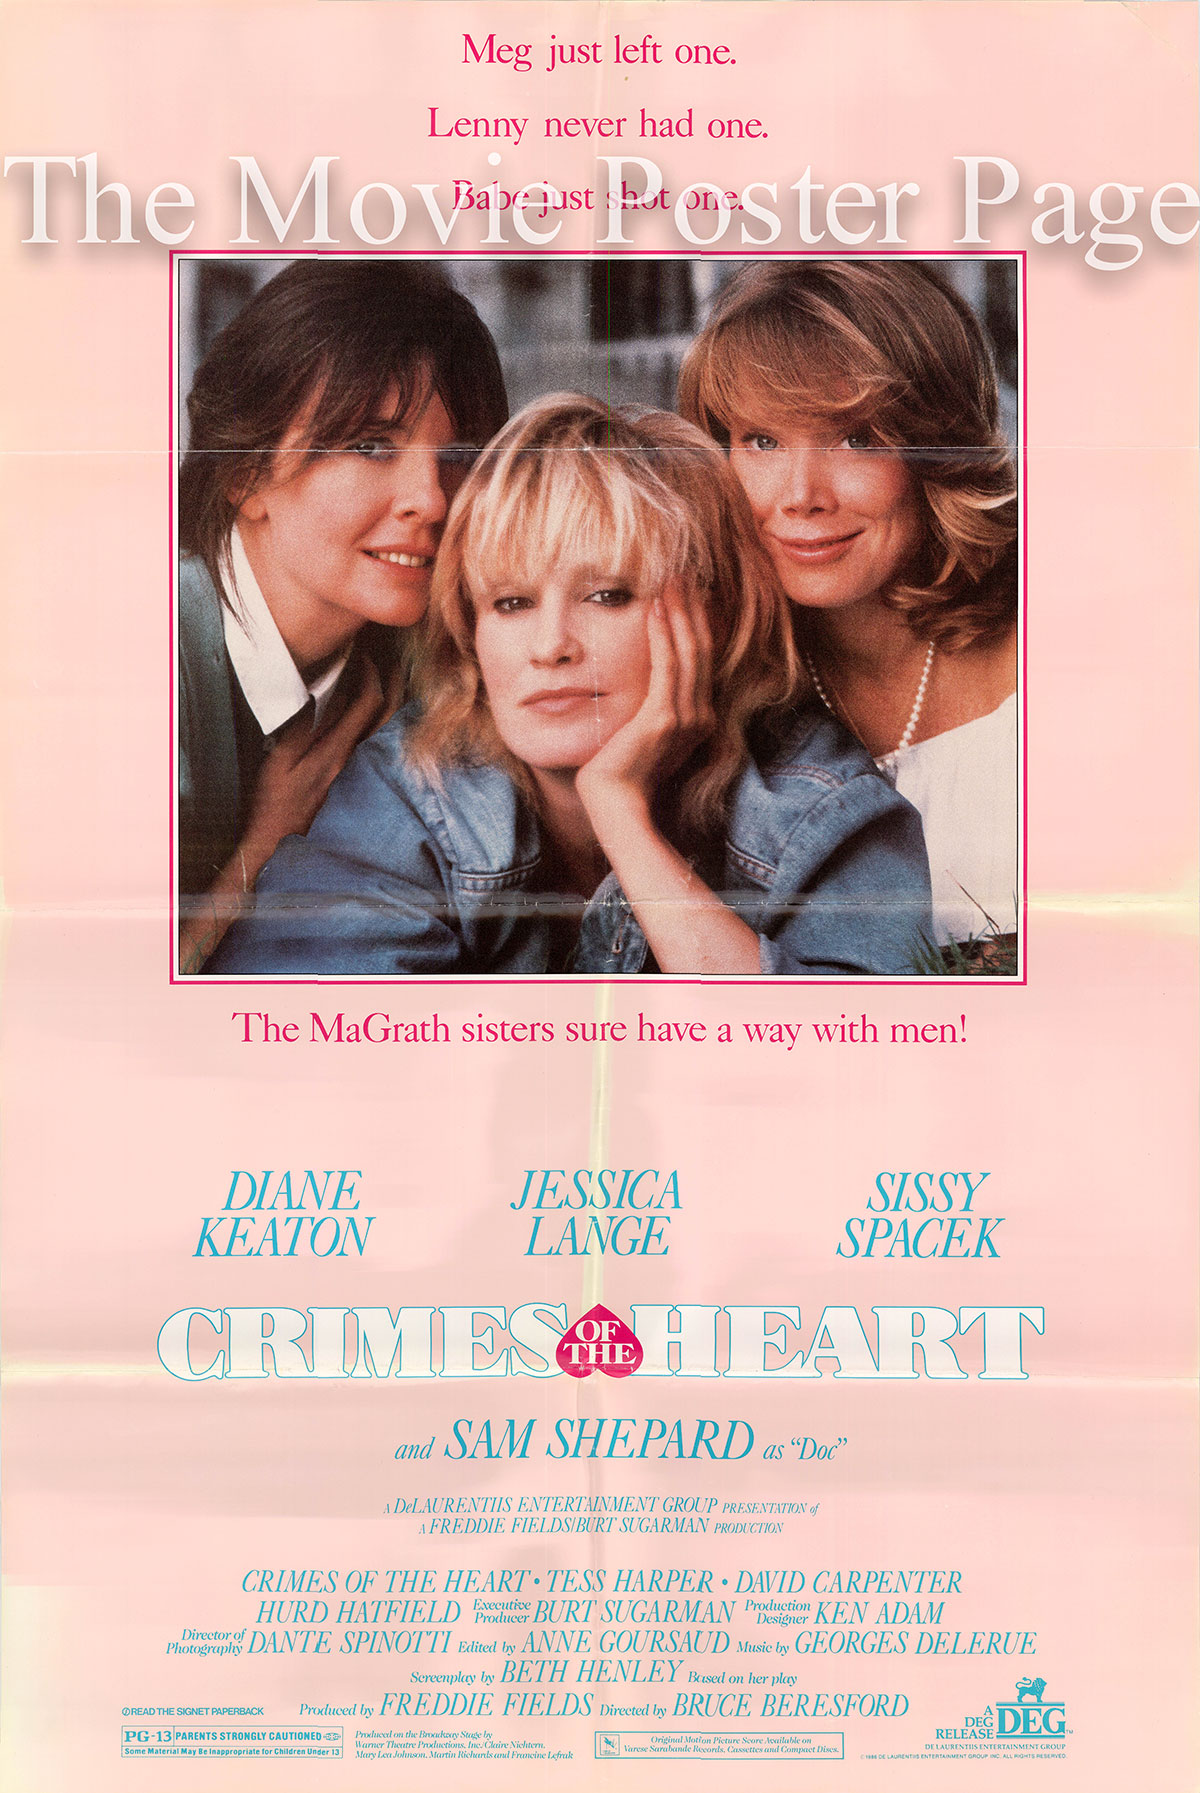 Pictured is a US one-sheet poster for the 1986 Bruce Beresford film Crimes of the Heart starring Diane Keaton.